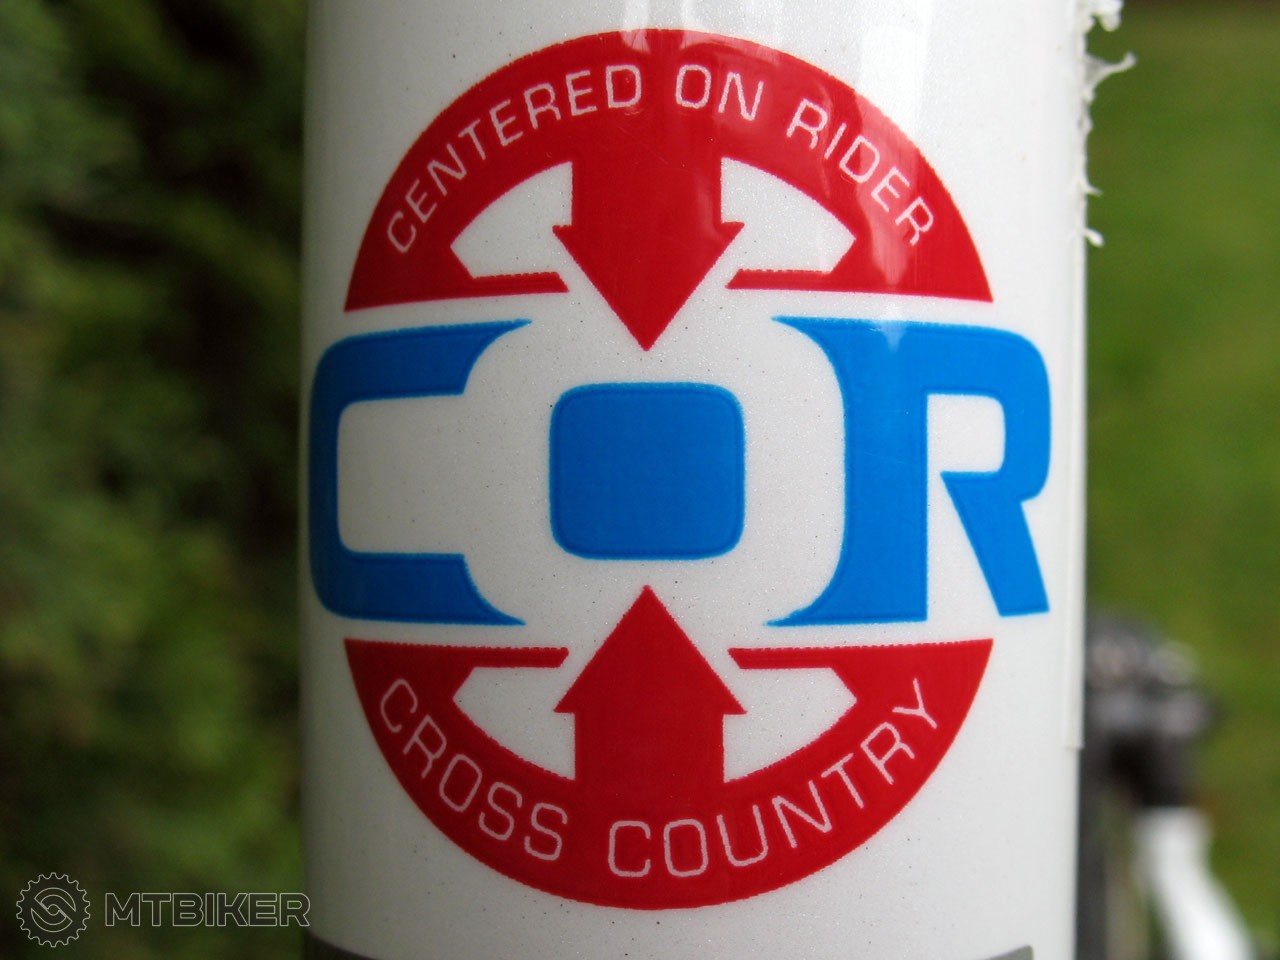 Centered on rider - Cross Country